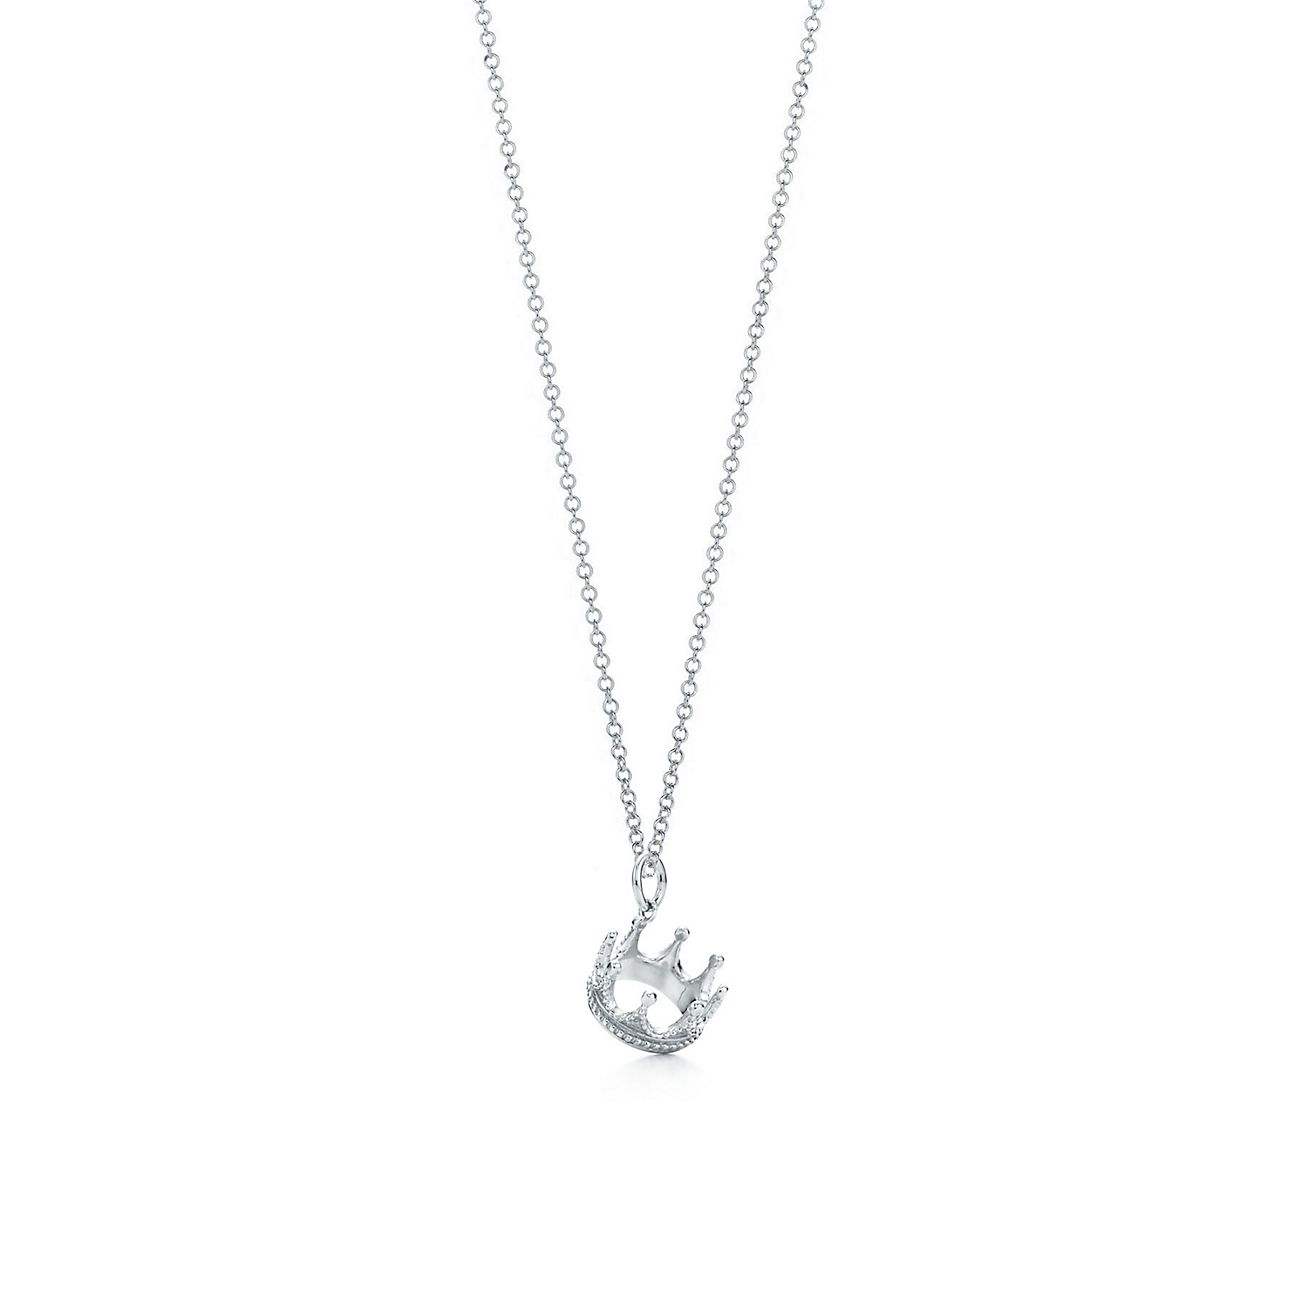 Jewelry Necklaces Pendants Crown Charm And Chain Grp02344 Tiffany Charms For Sale